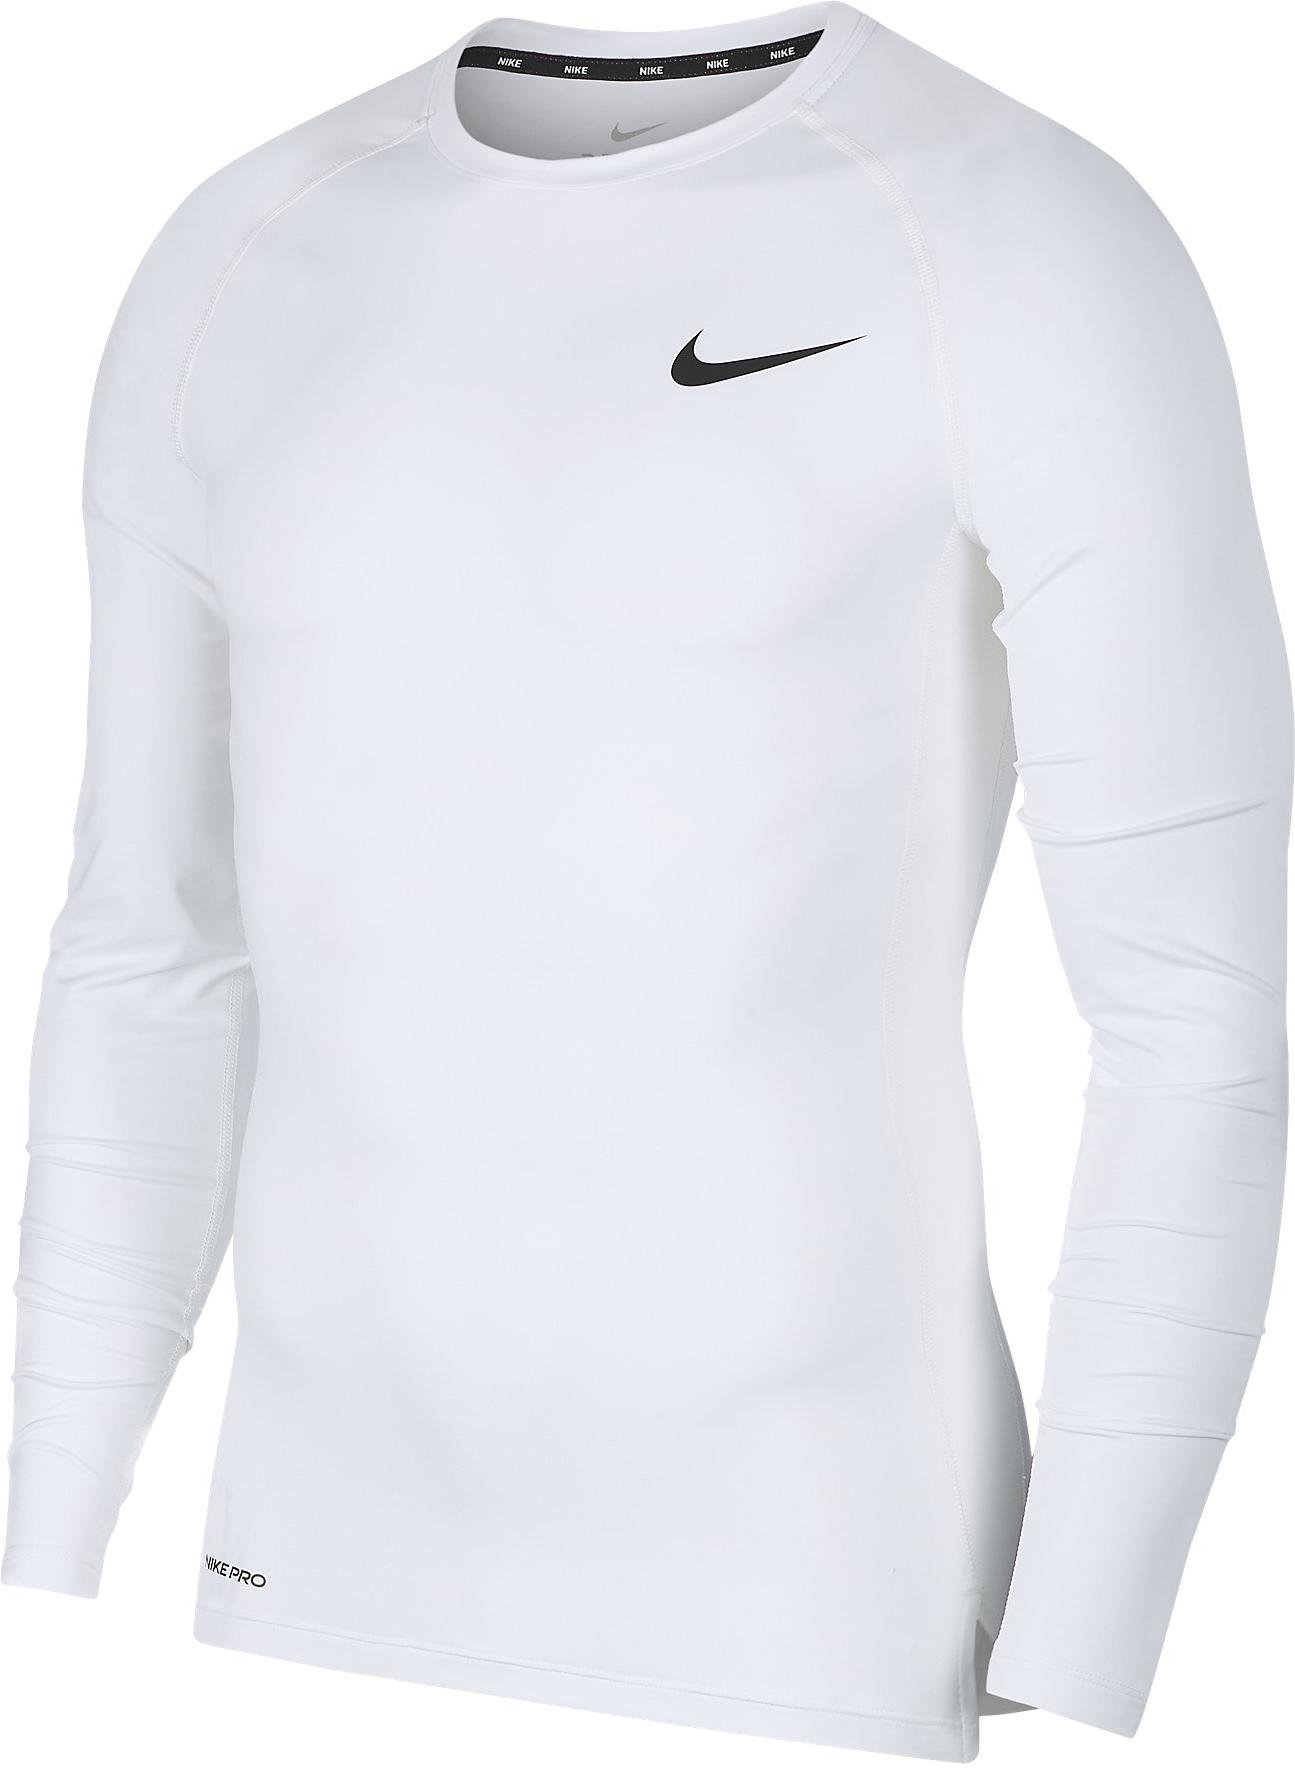 Kompressions-T-Shirt Nike M NP TOP LS TIGHT